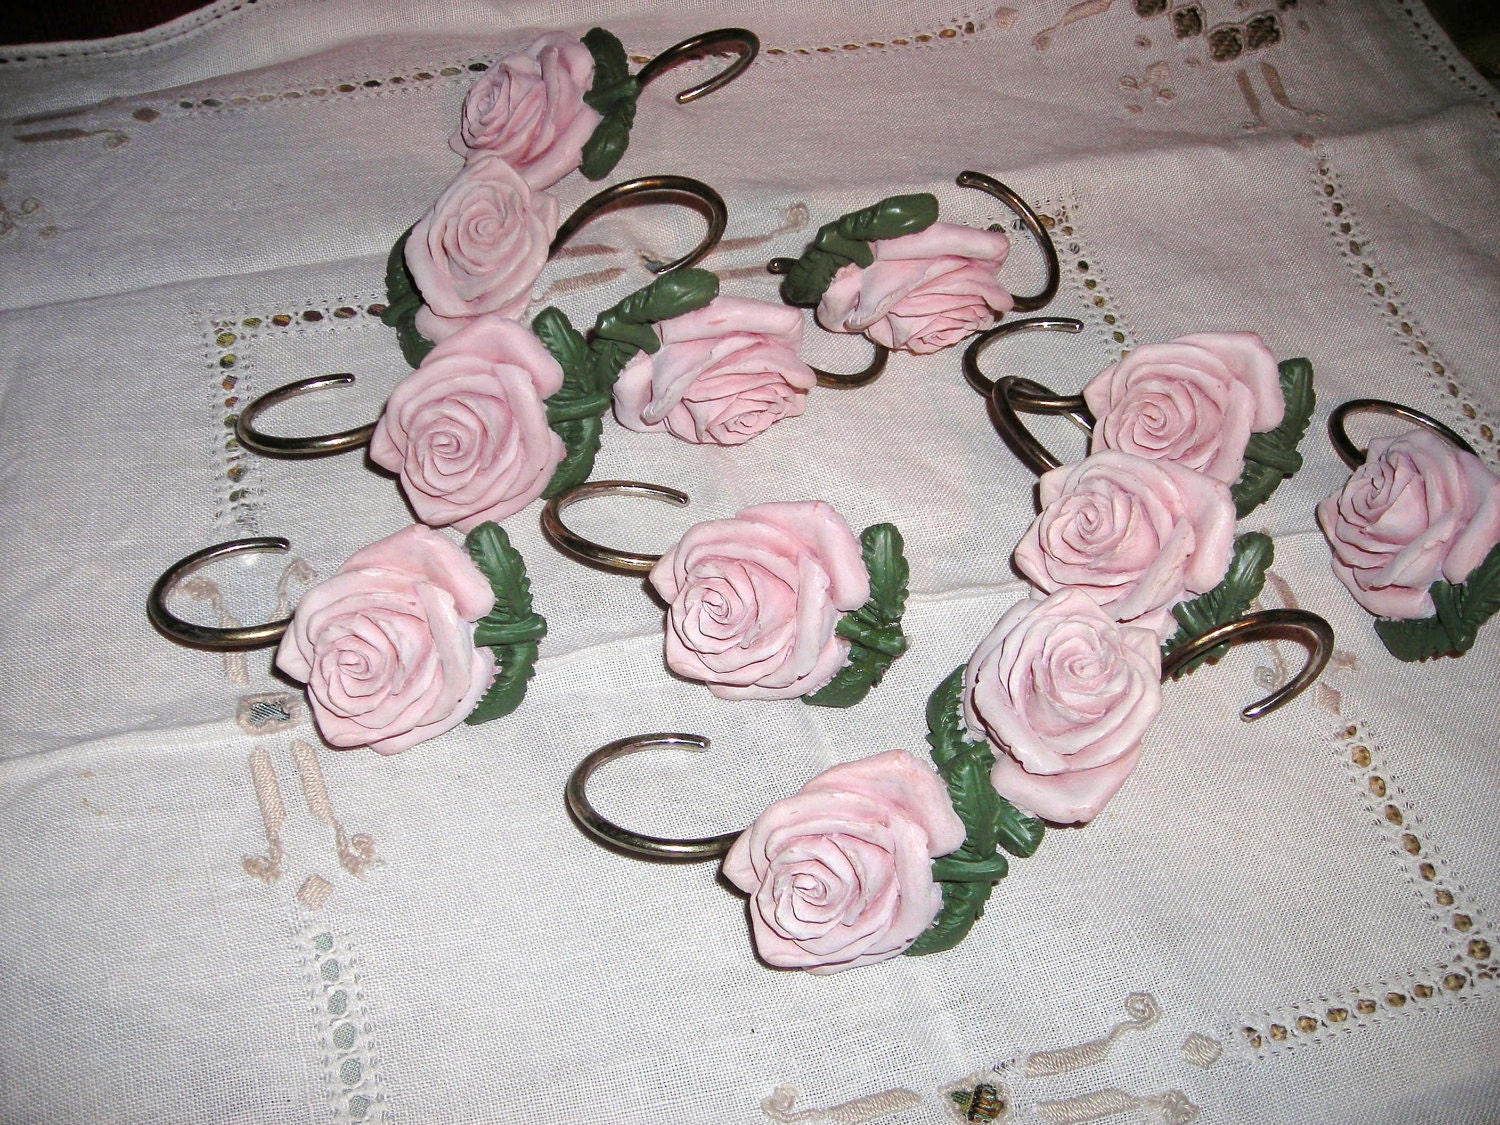 Home Decor / Pink Roses / Shower Curtain Rings / by aquabead